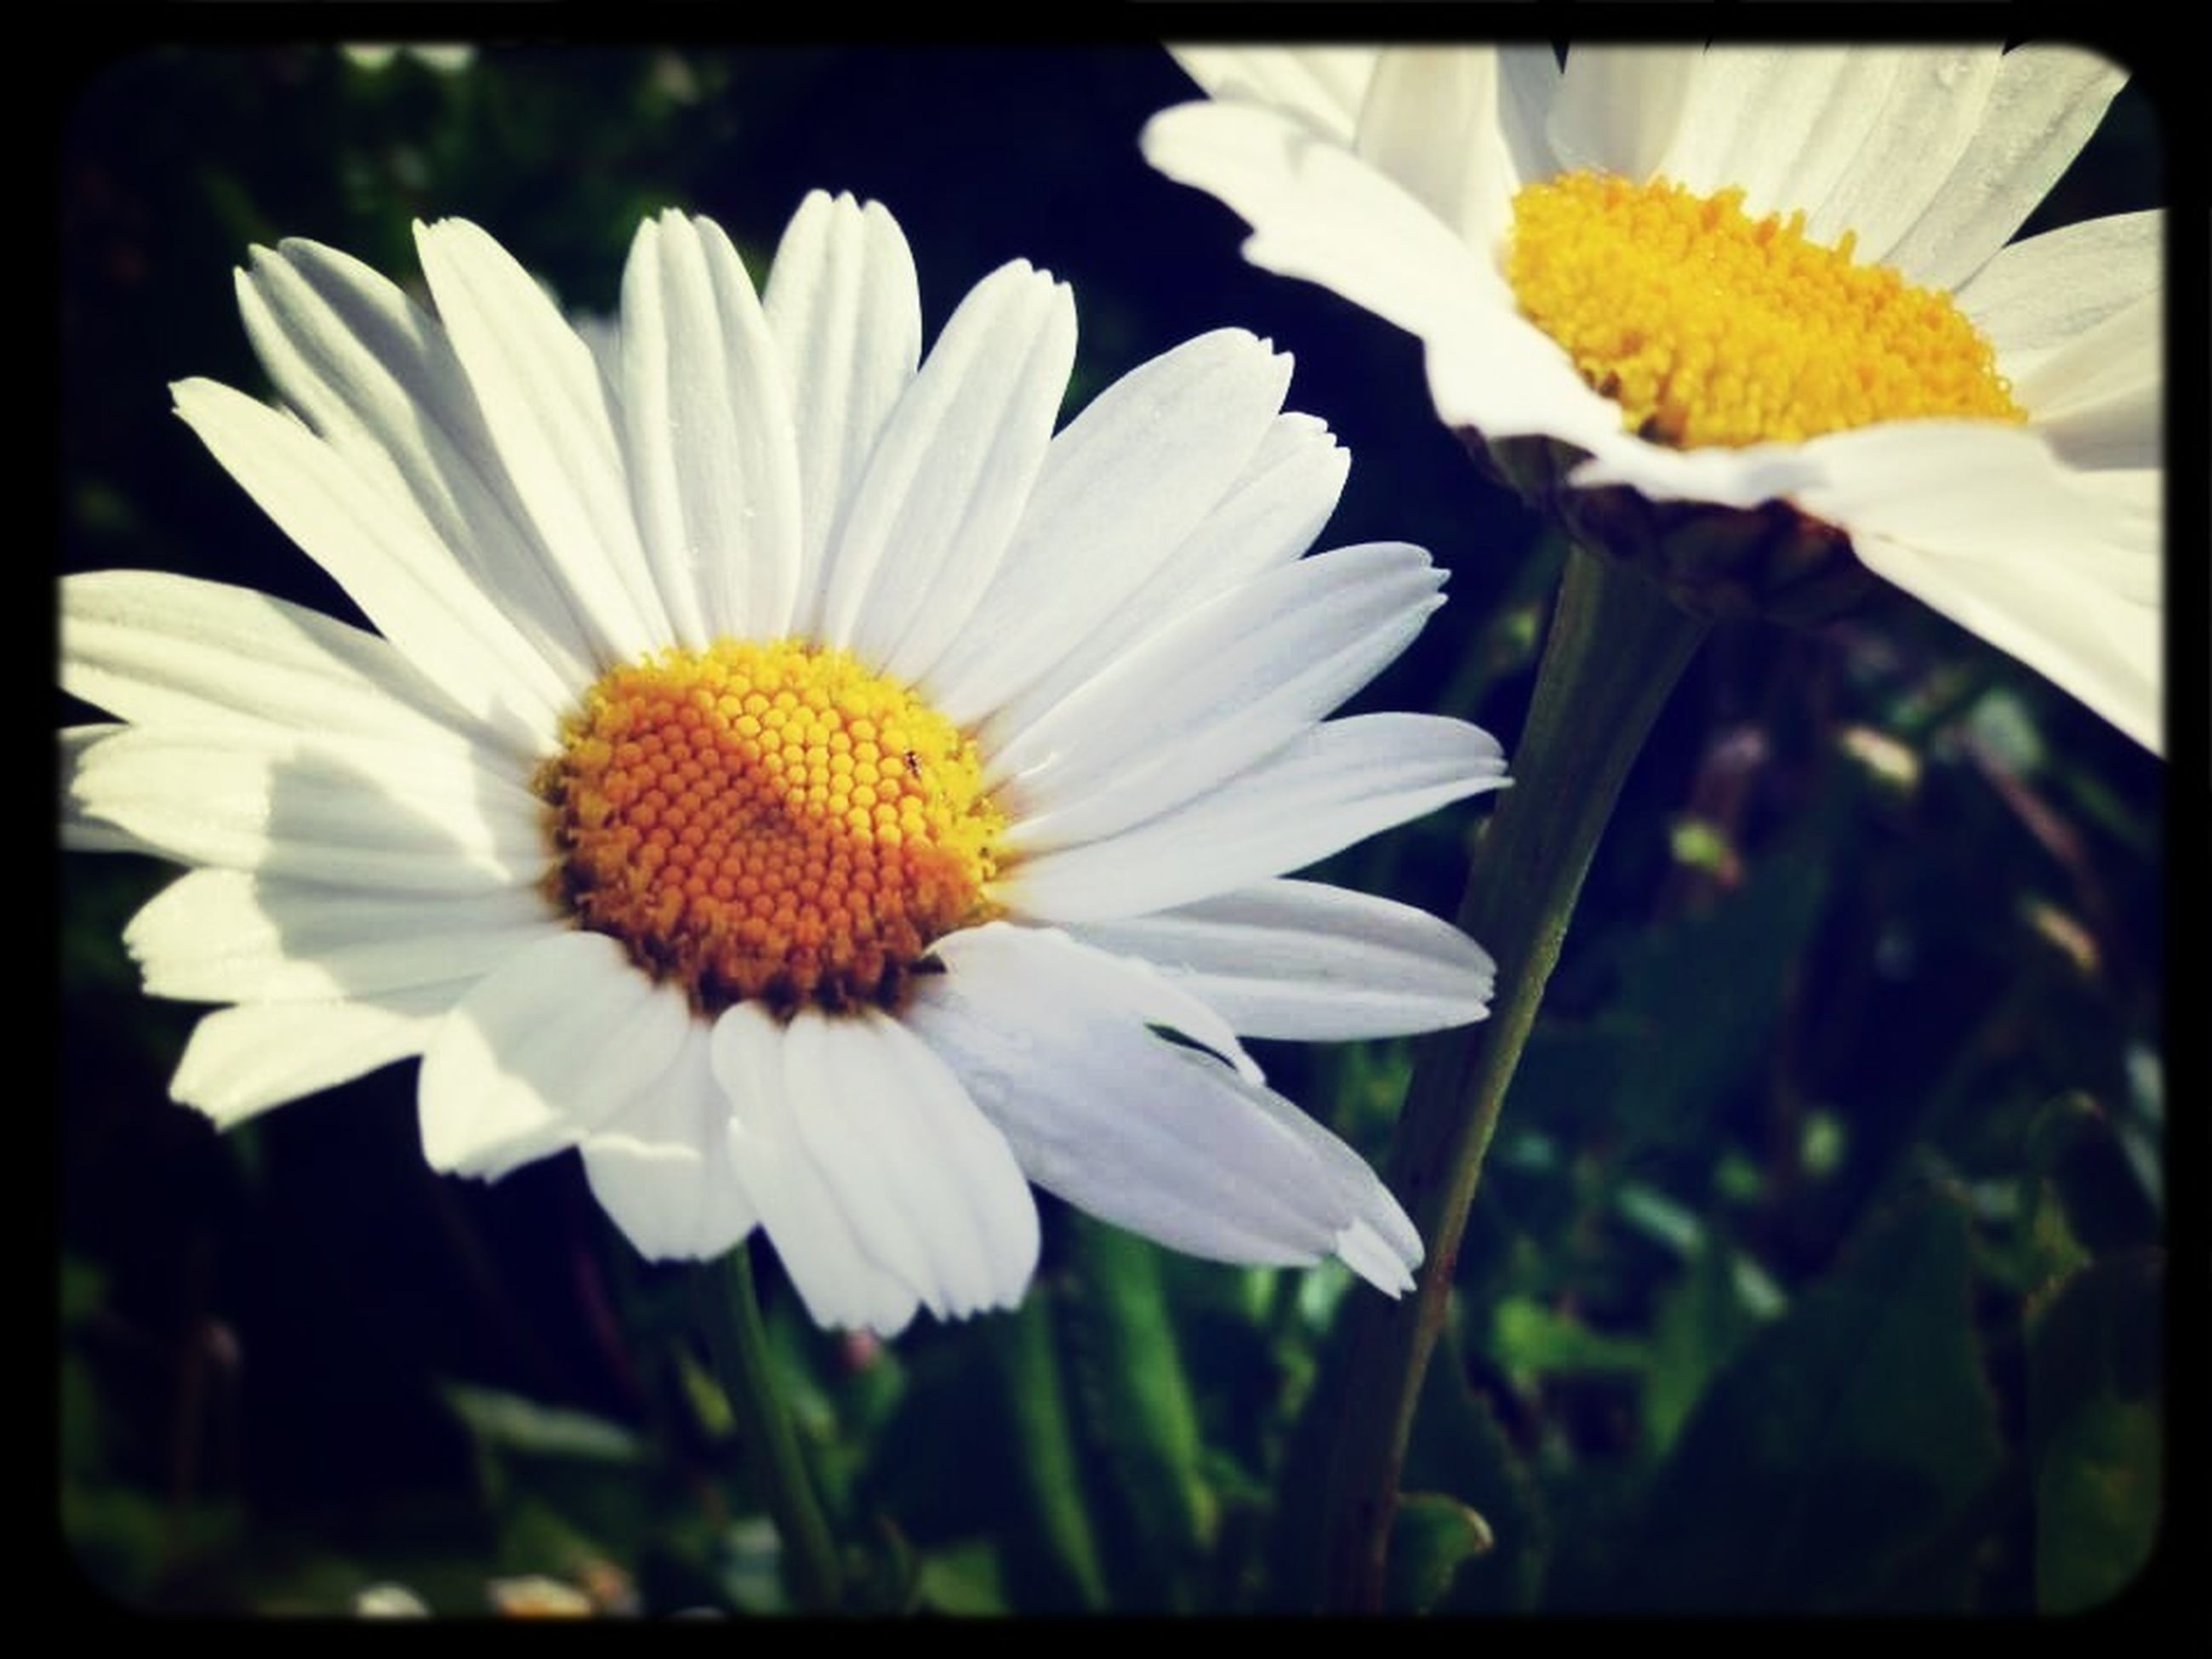 flower, transfer print, petal, flower head, freshness, fragility, white color, auto post production filter, yellow, pollen, daisy, beauty in nature, growth, close-up, blooming, nature, single flower, white, focus on foreground, plant